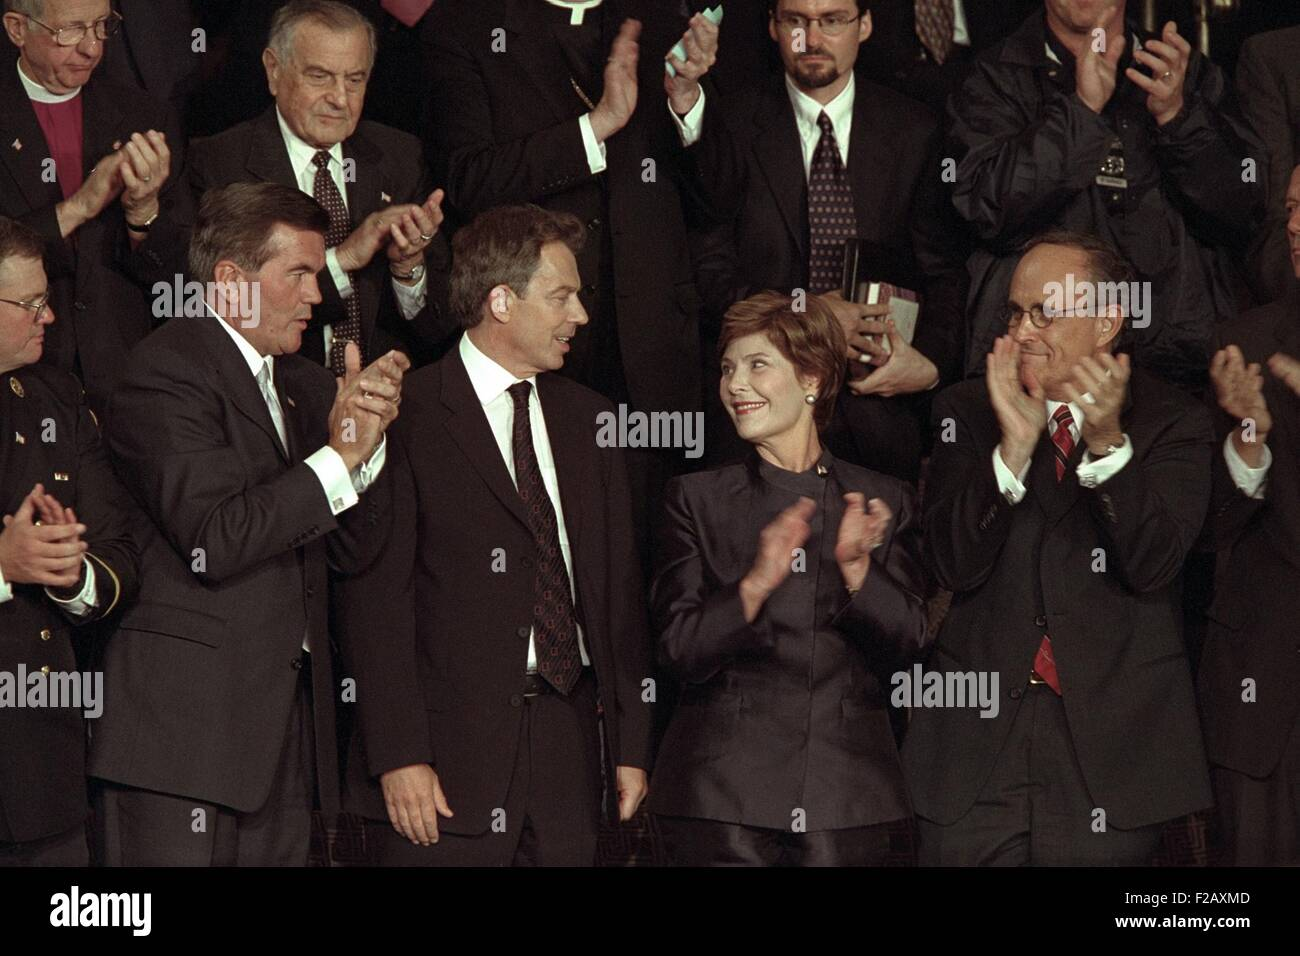 First Lady Laura Bush with Tom Ridge, PM Tony Blair, and NYC Mayor Rudy Giuliani. All three men were mentioned in - Stock Image